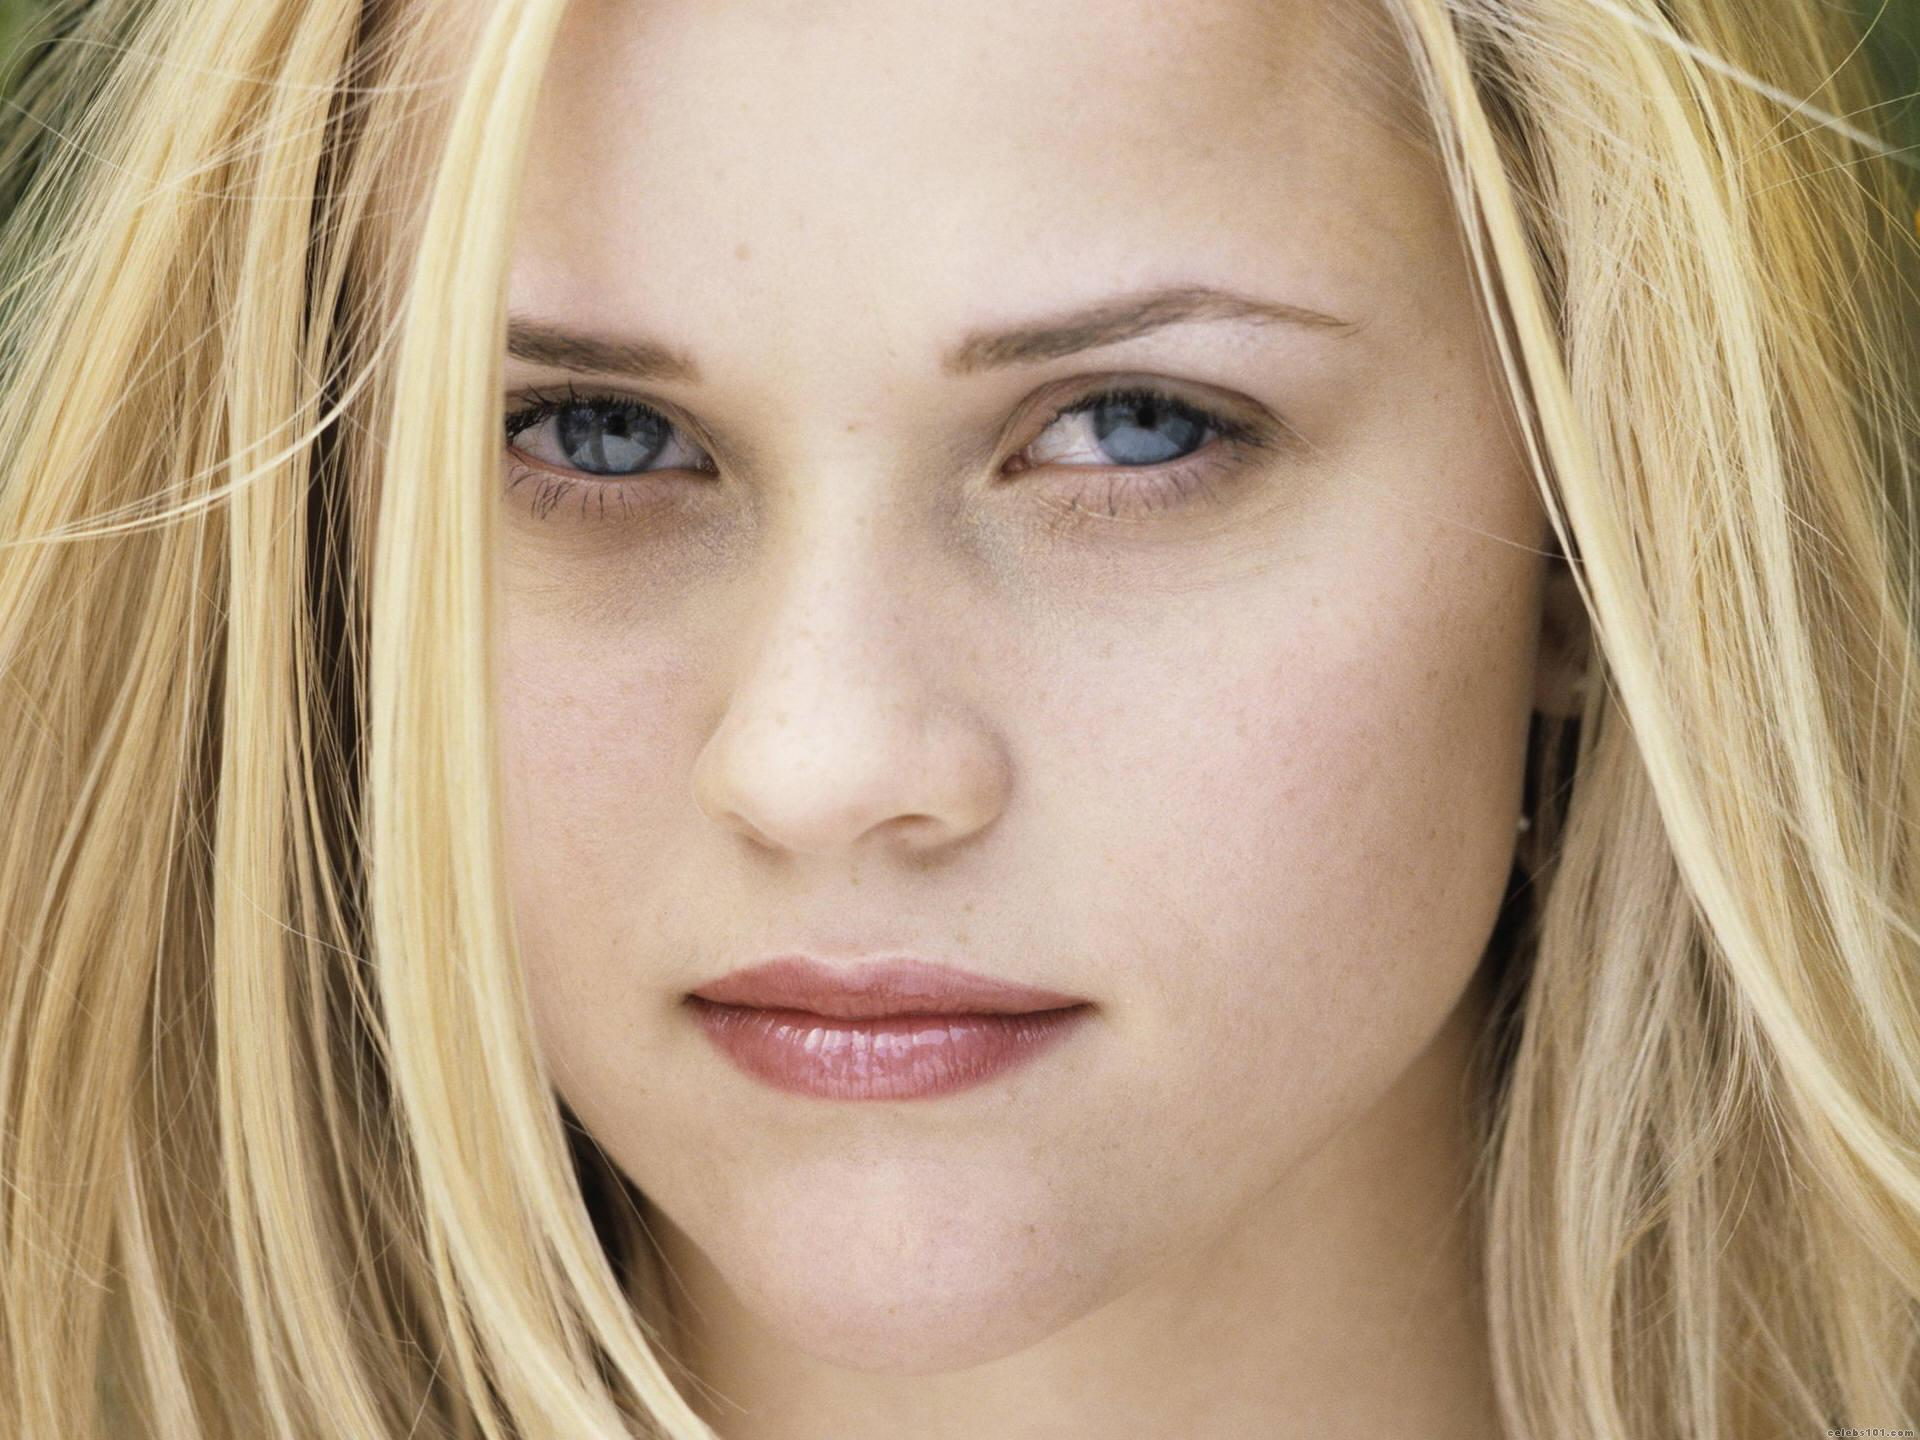 1920x1440 - Reese Witherspoon Wallpapers 26